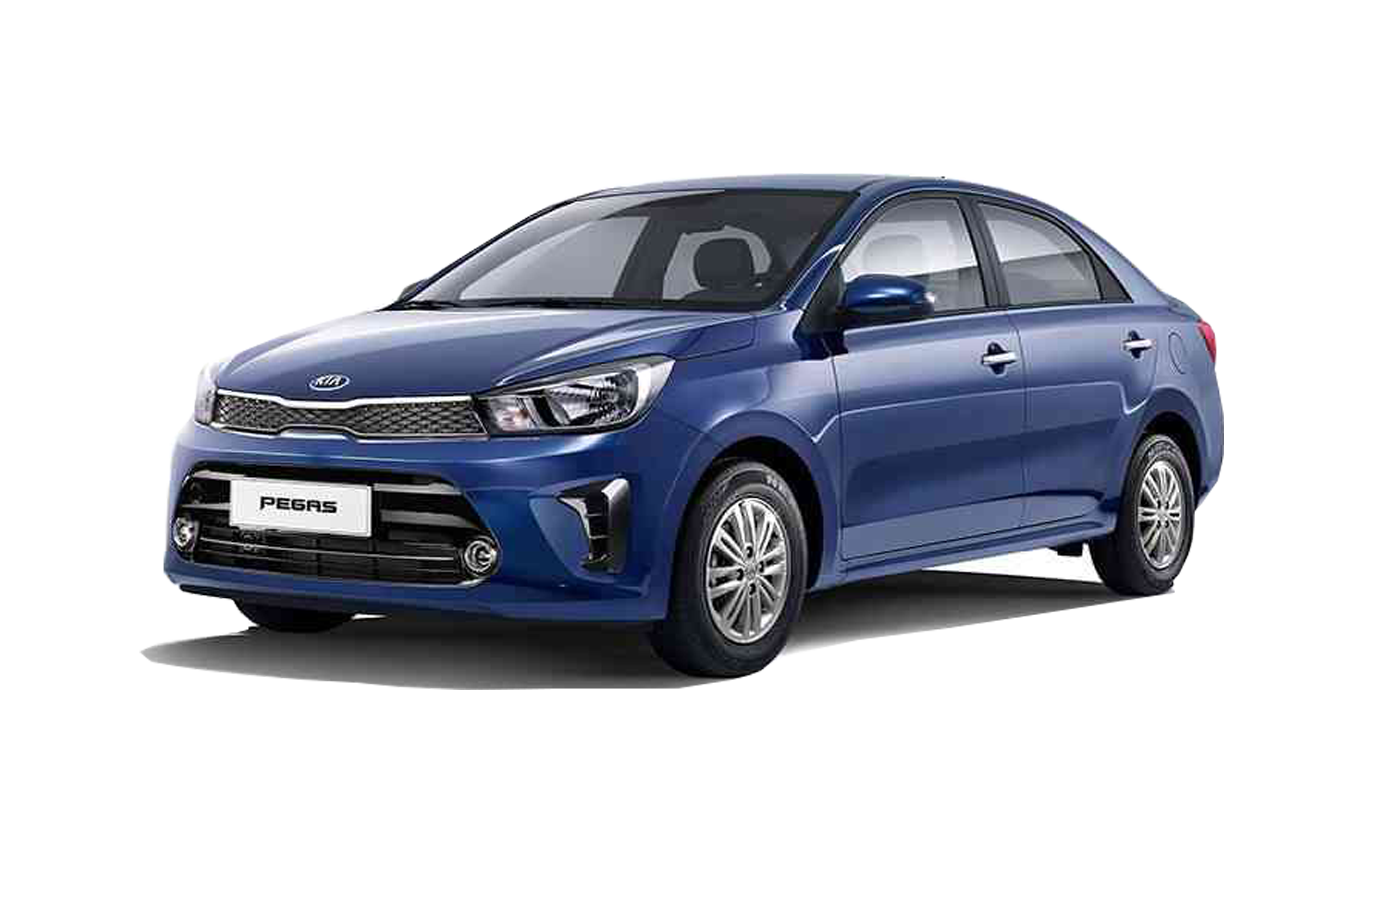 52 The Kia Pegas 2020 Specifications Performance And New Engine